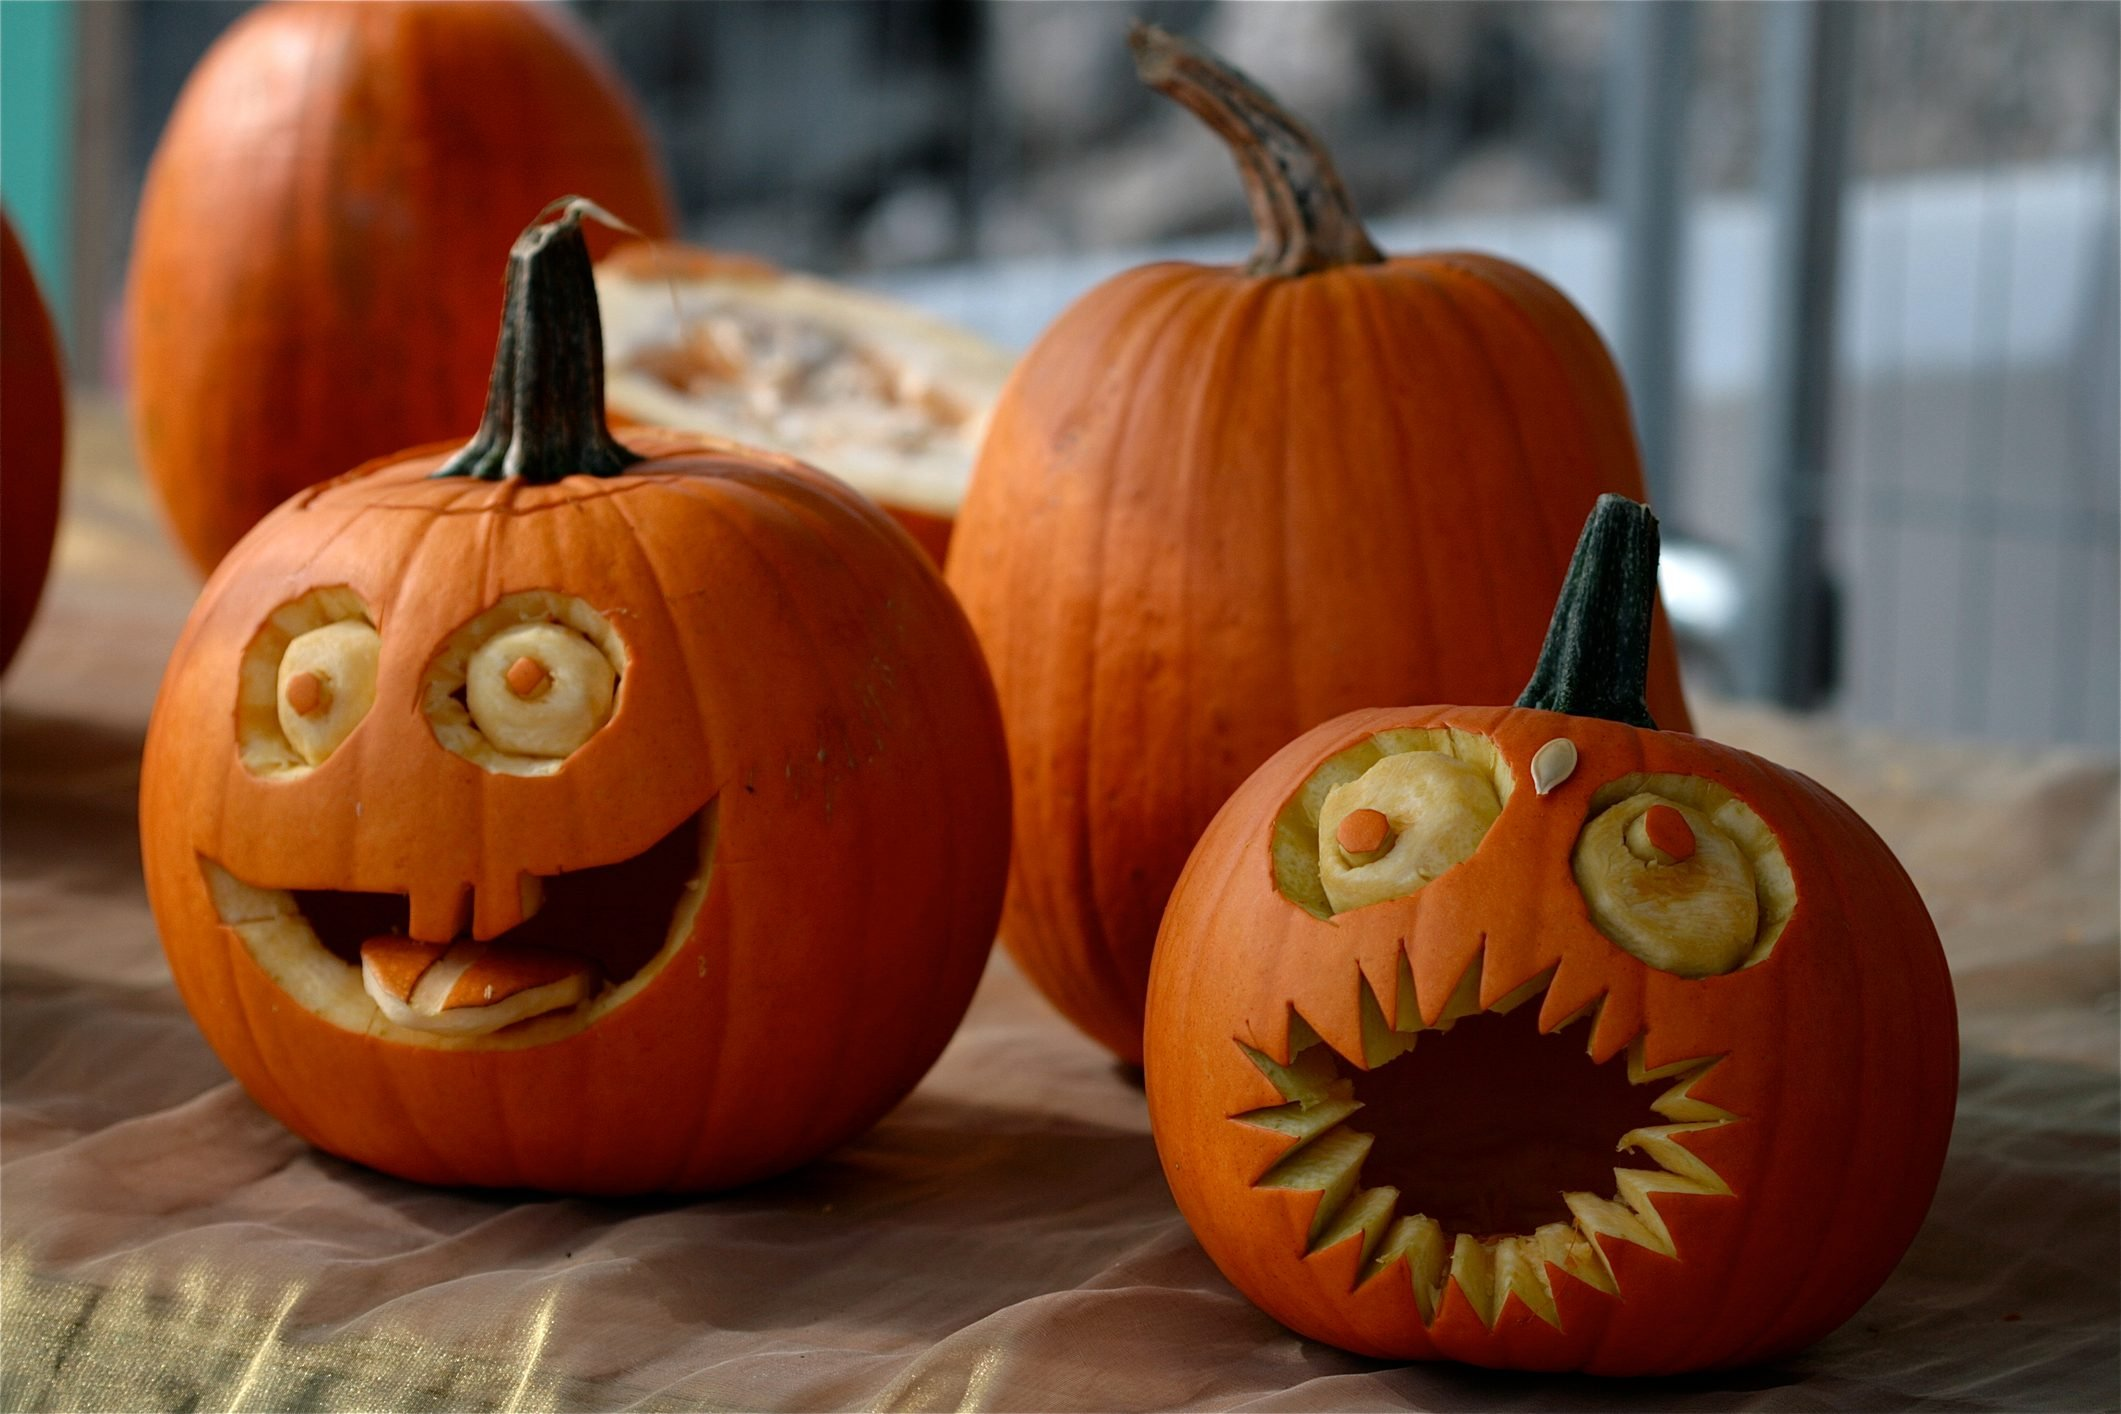 Pumpkins decorated with faces with eyes and mouths